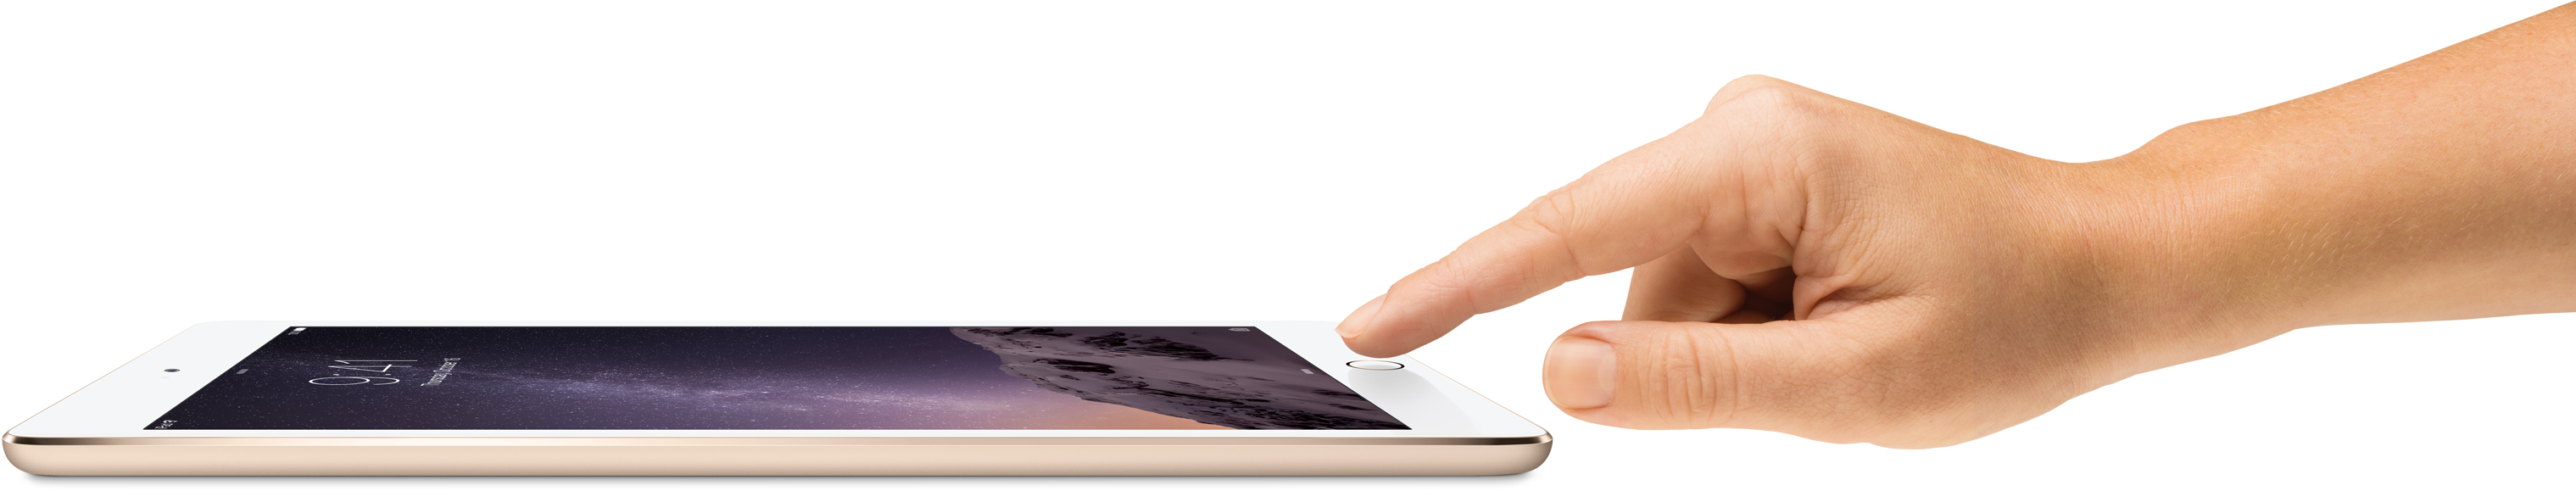 iPad Air 2 touch id gold